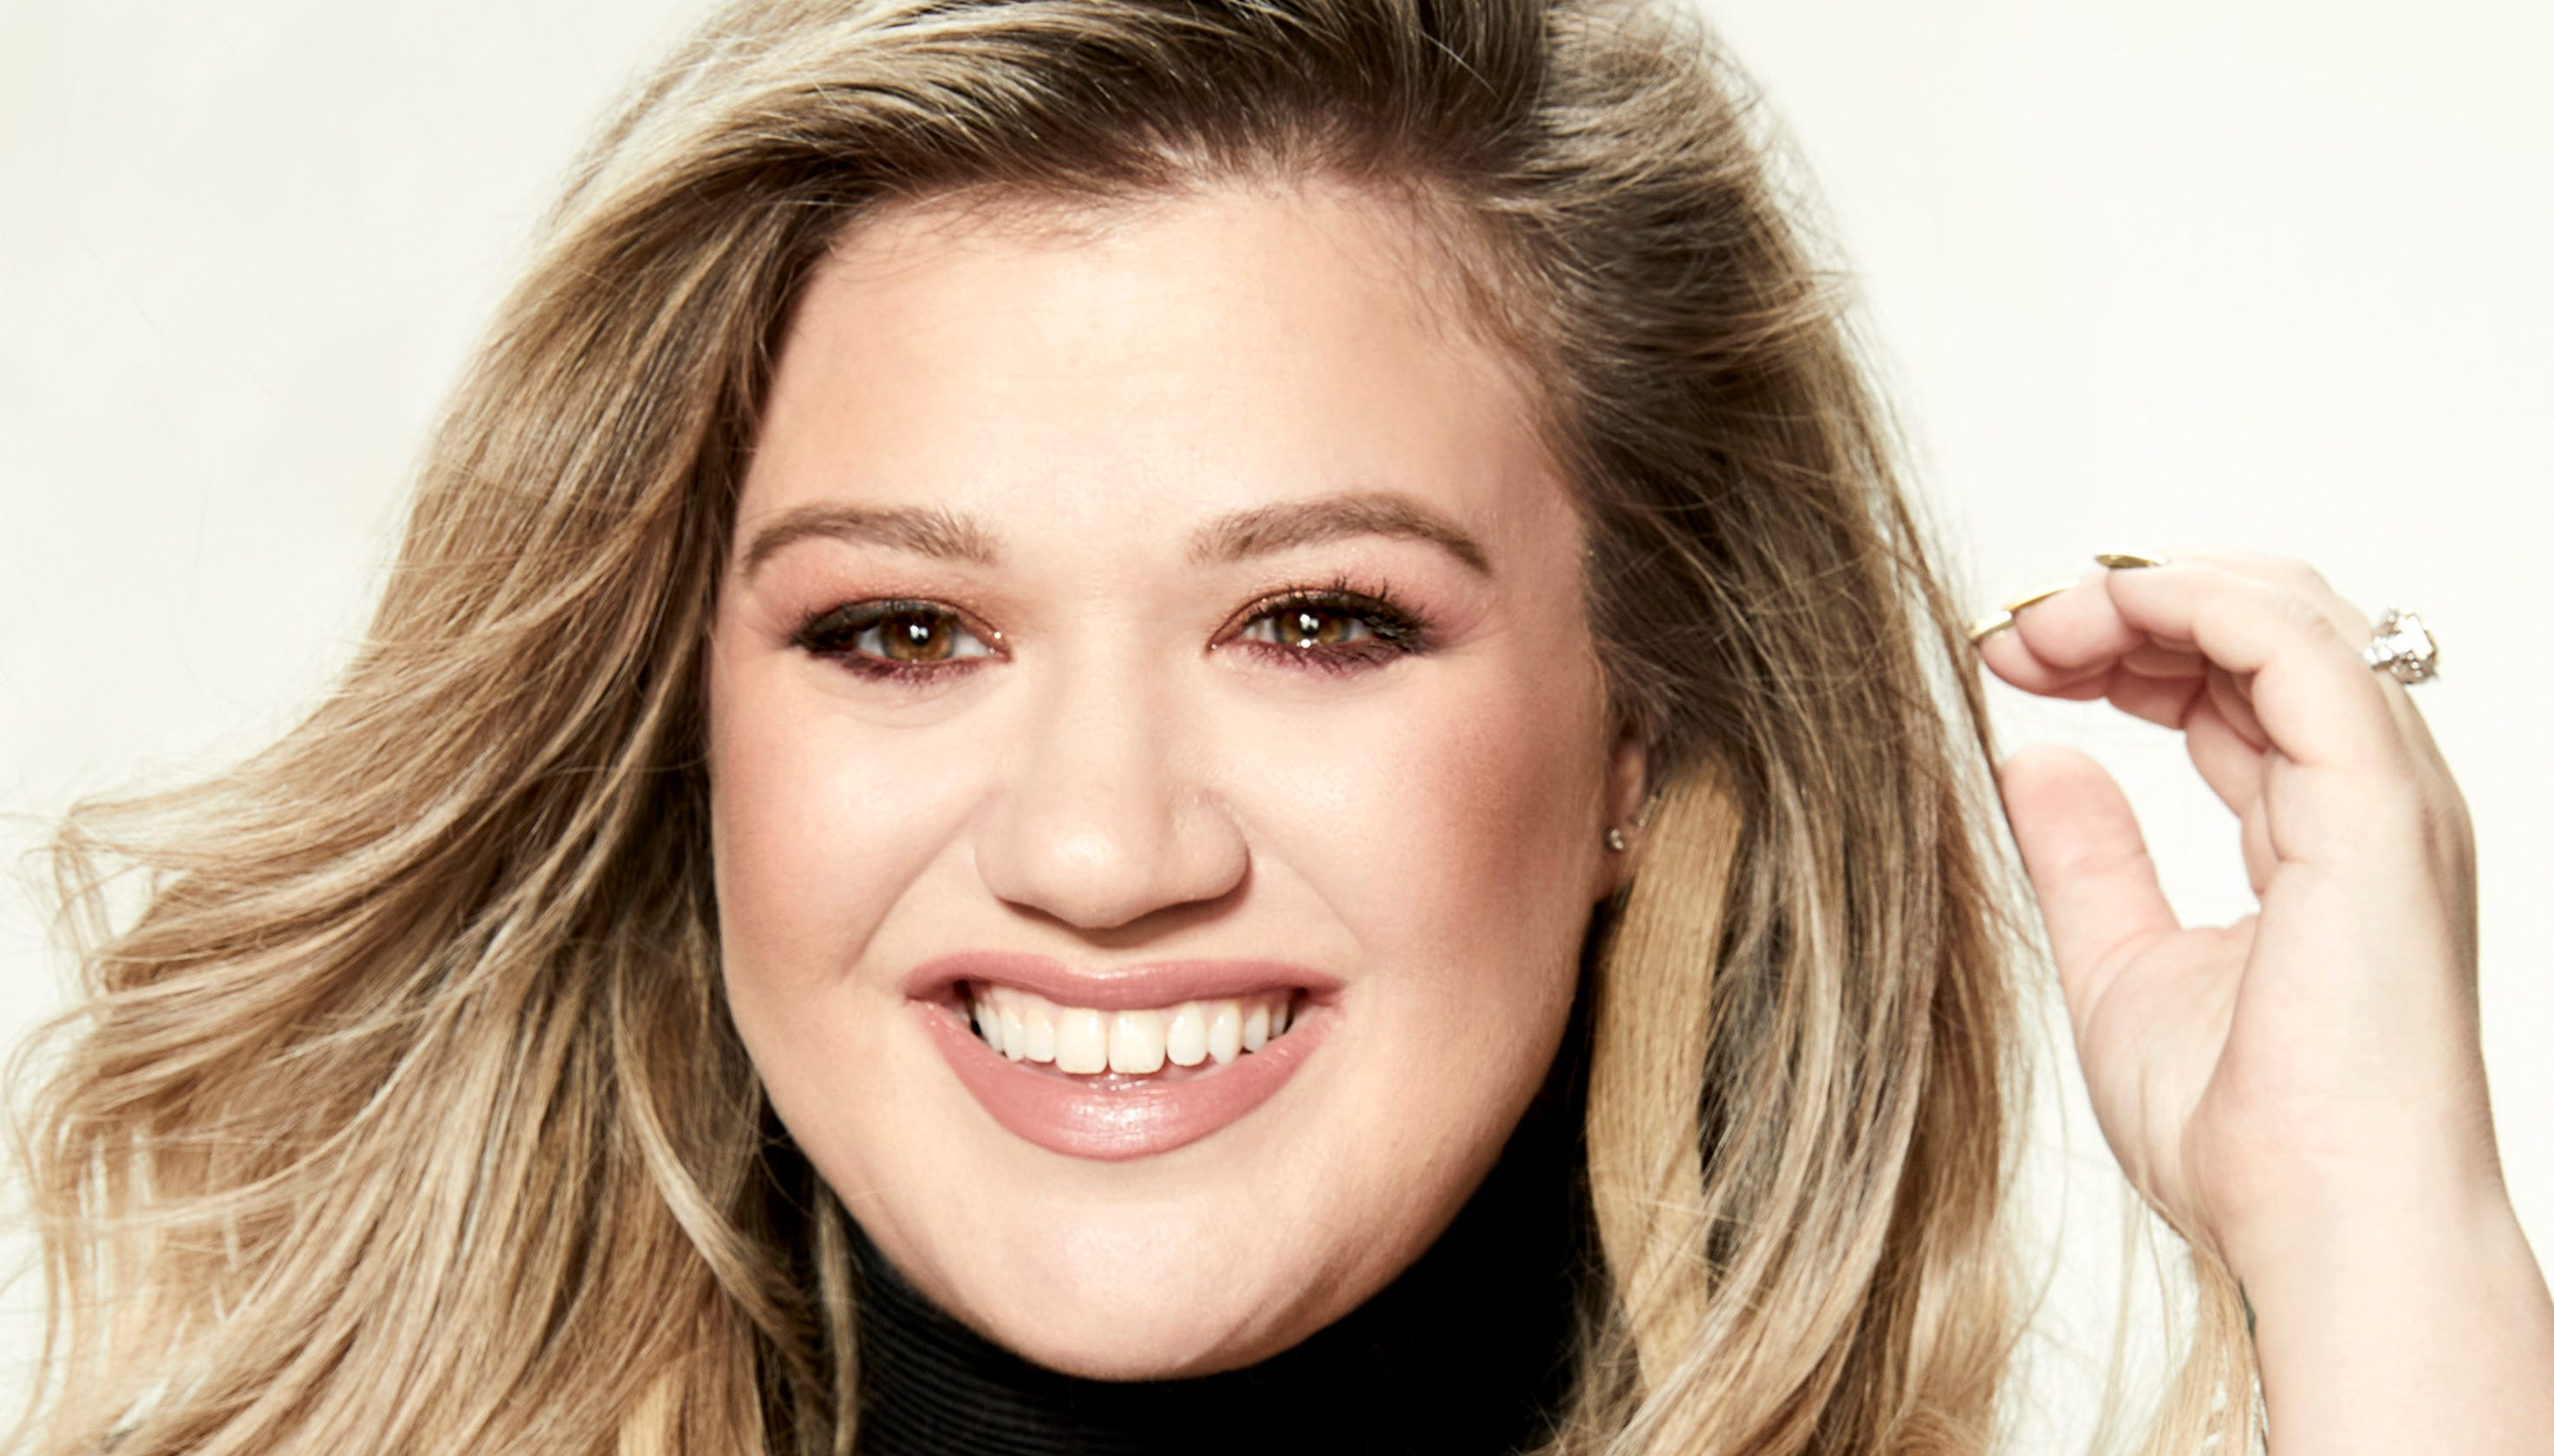 Kelly Clarkson preps for big music, book, TV and film projects.